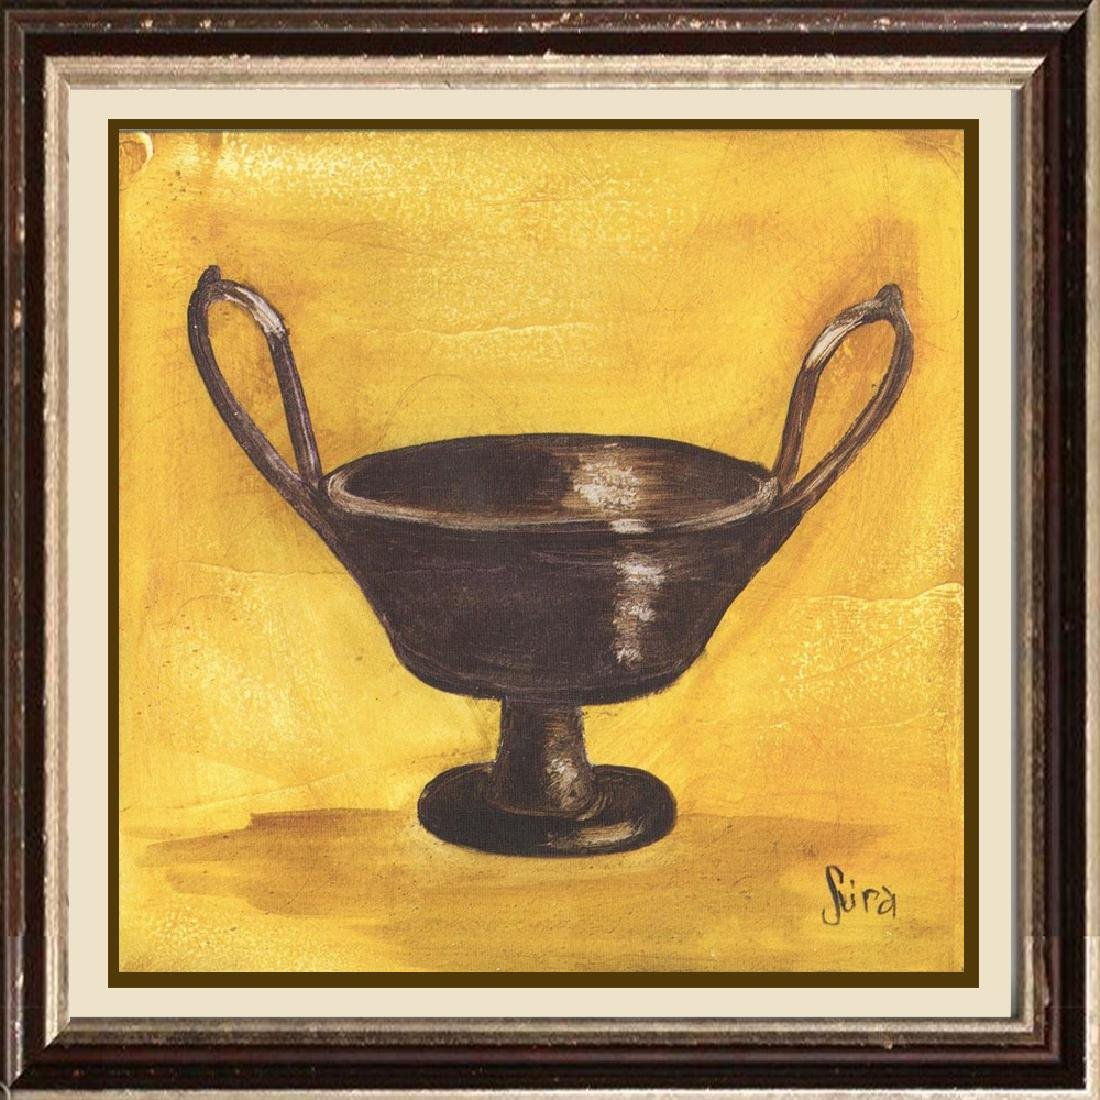 LARGE Vase on Gold Decorative Art